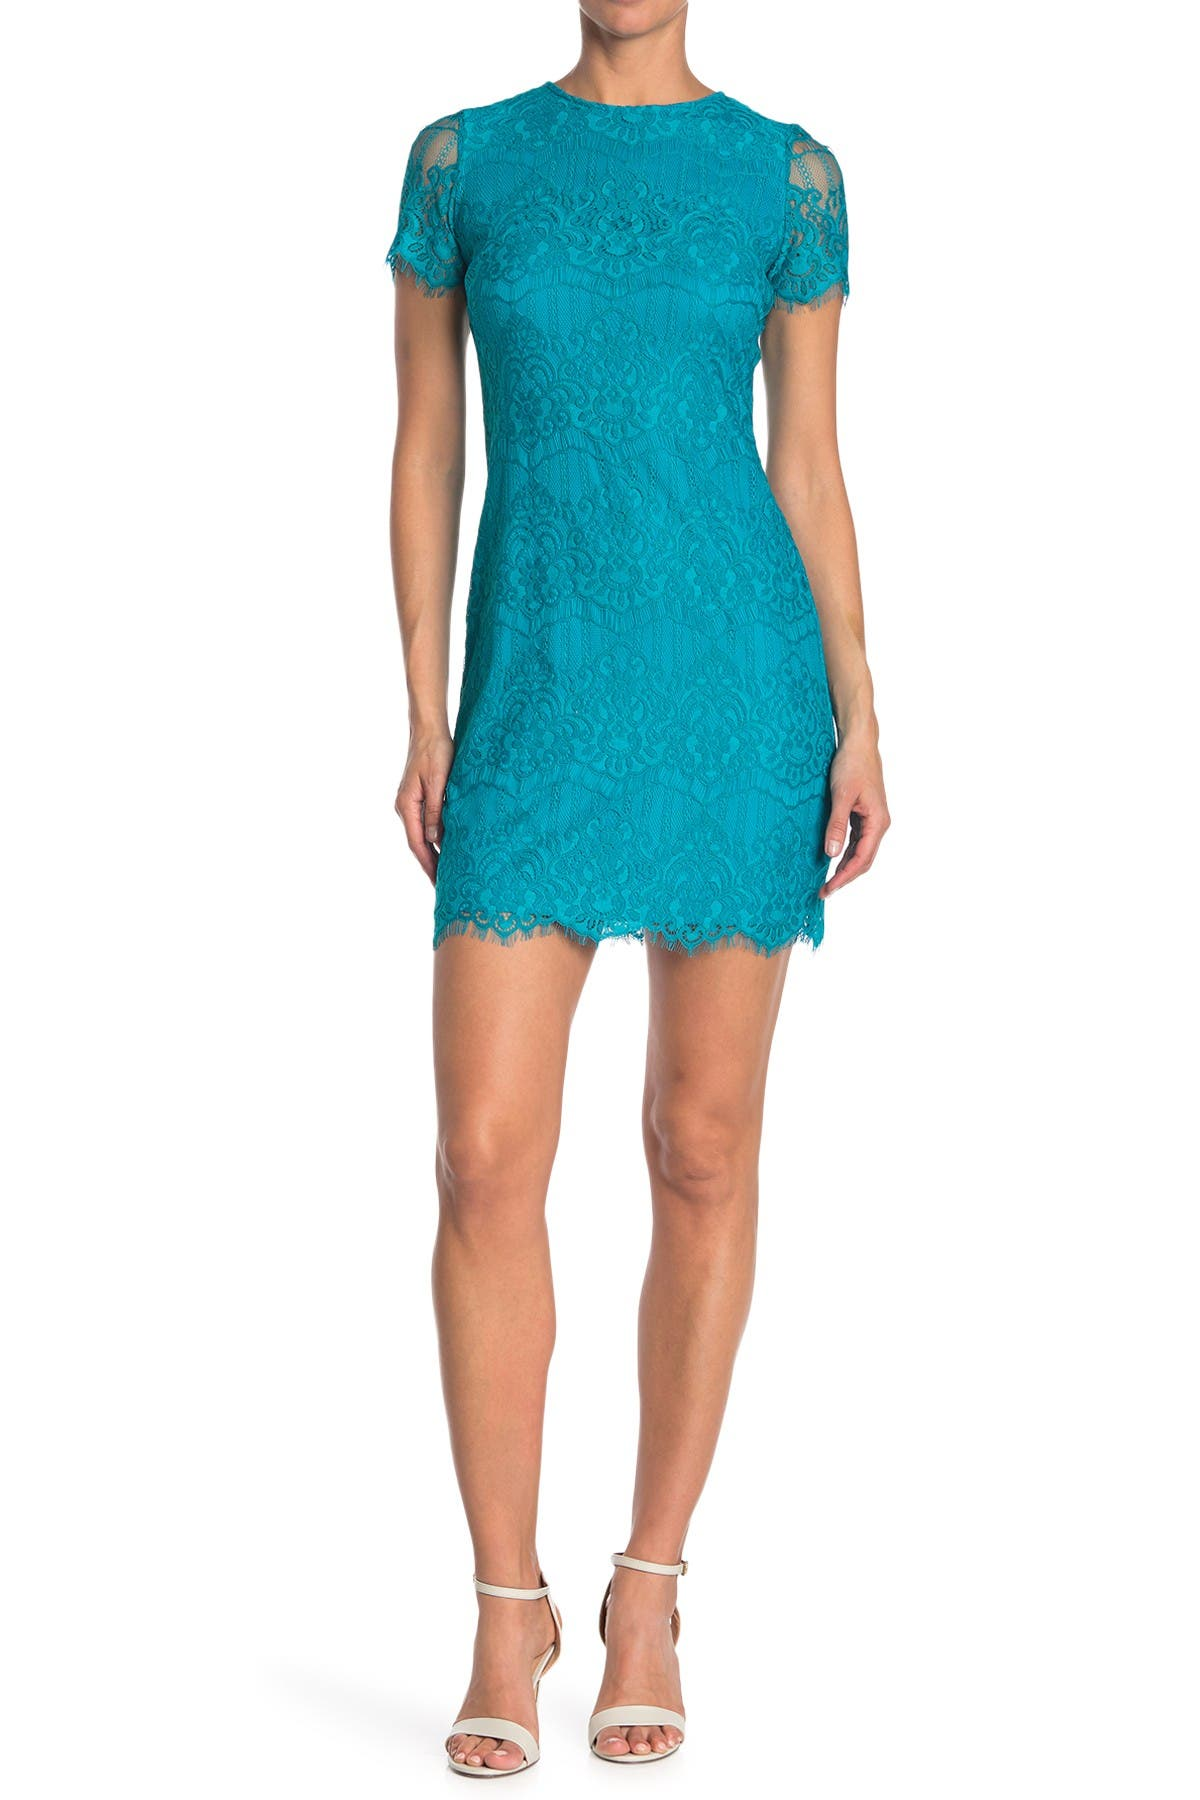 Image of Kensie Scalloped Short Sleeve Lace Dress